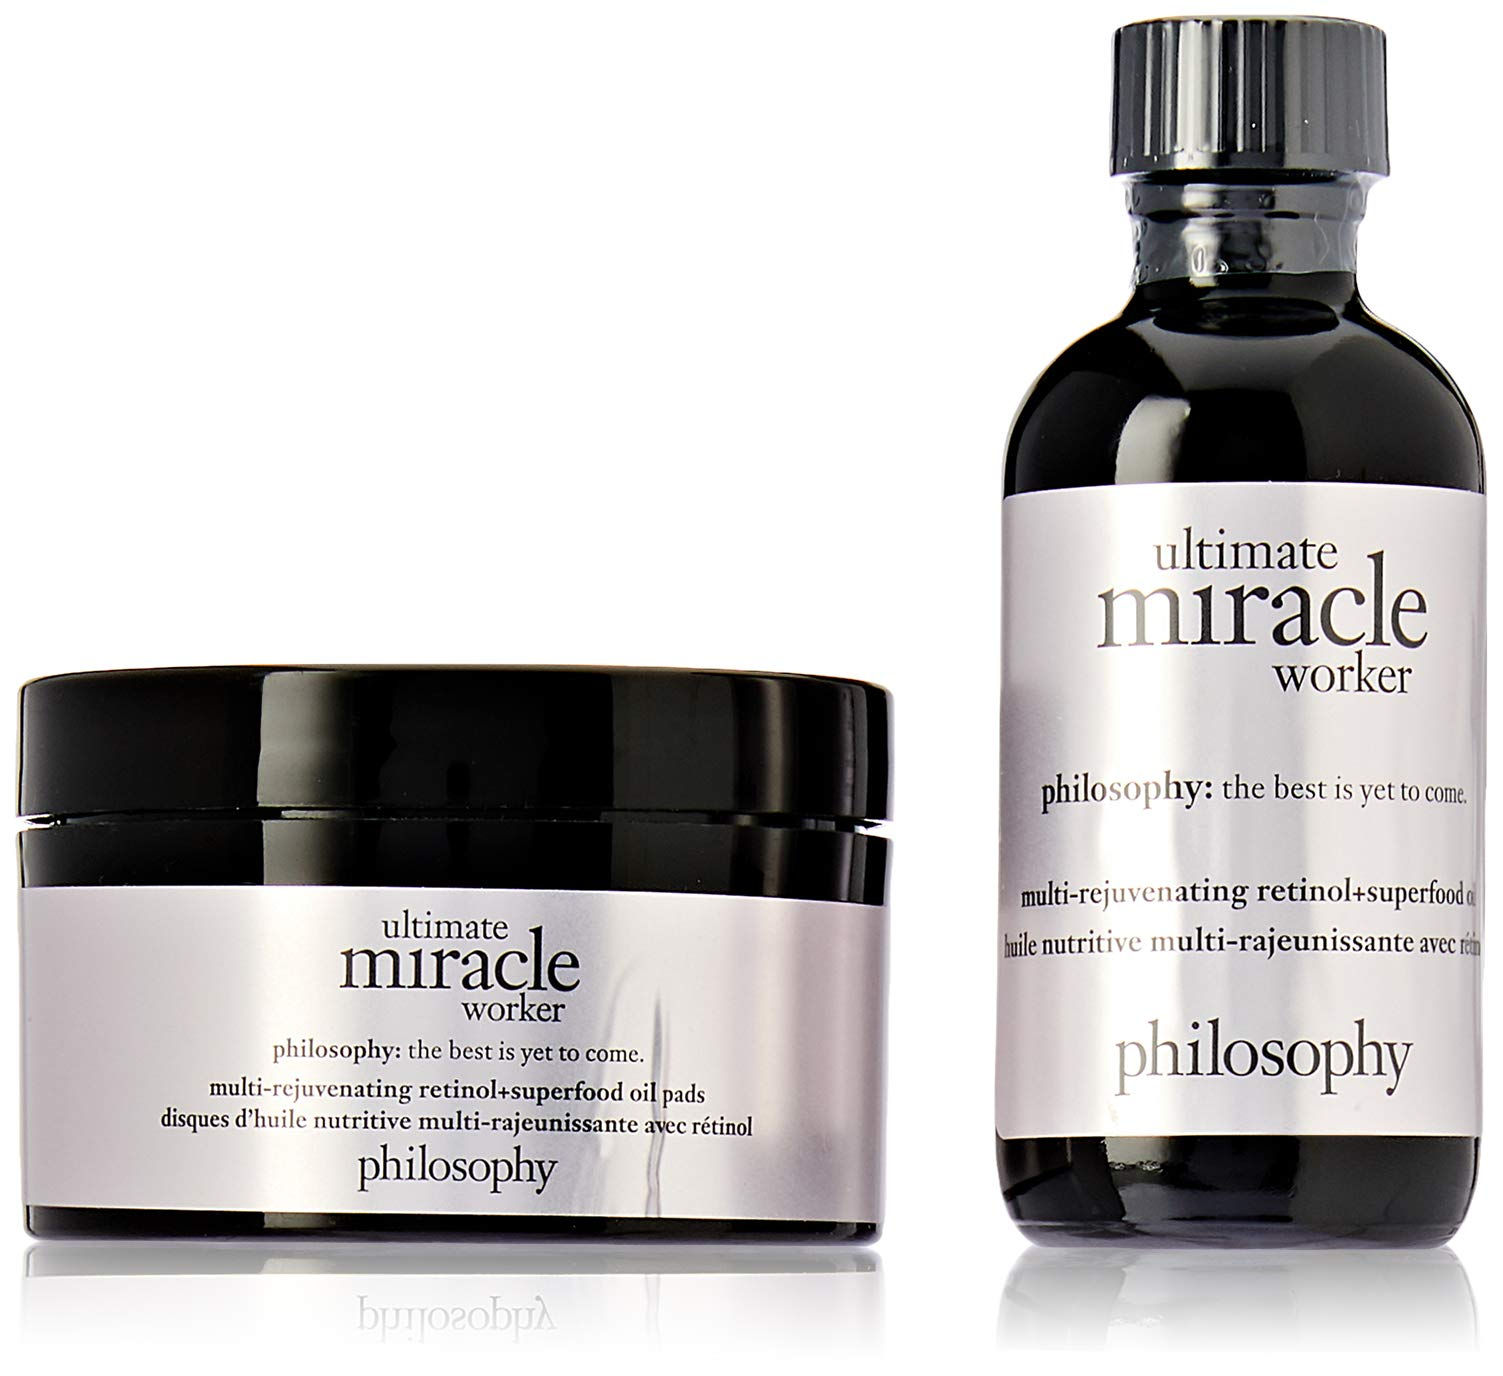 Philosophy Ultimate Miracle Worker By Philosophy for Unisex - 2 Pc Set 2oz Multi-rejuvenating Retinol & Superfood Oil & Pads, 60 Pads, 2count